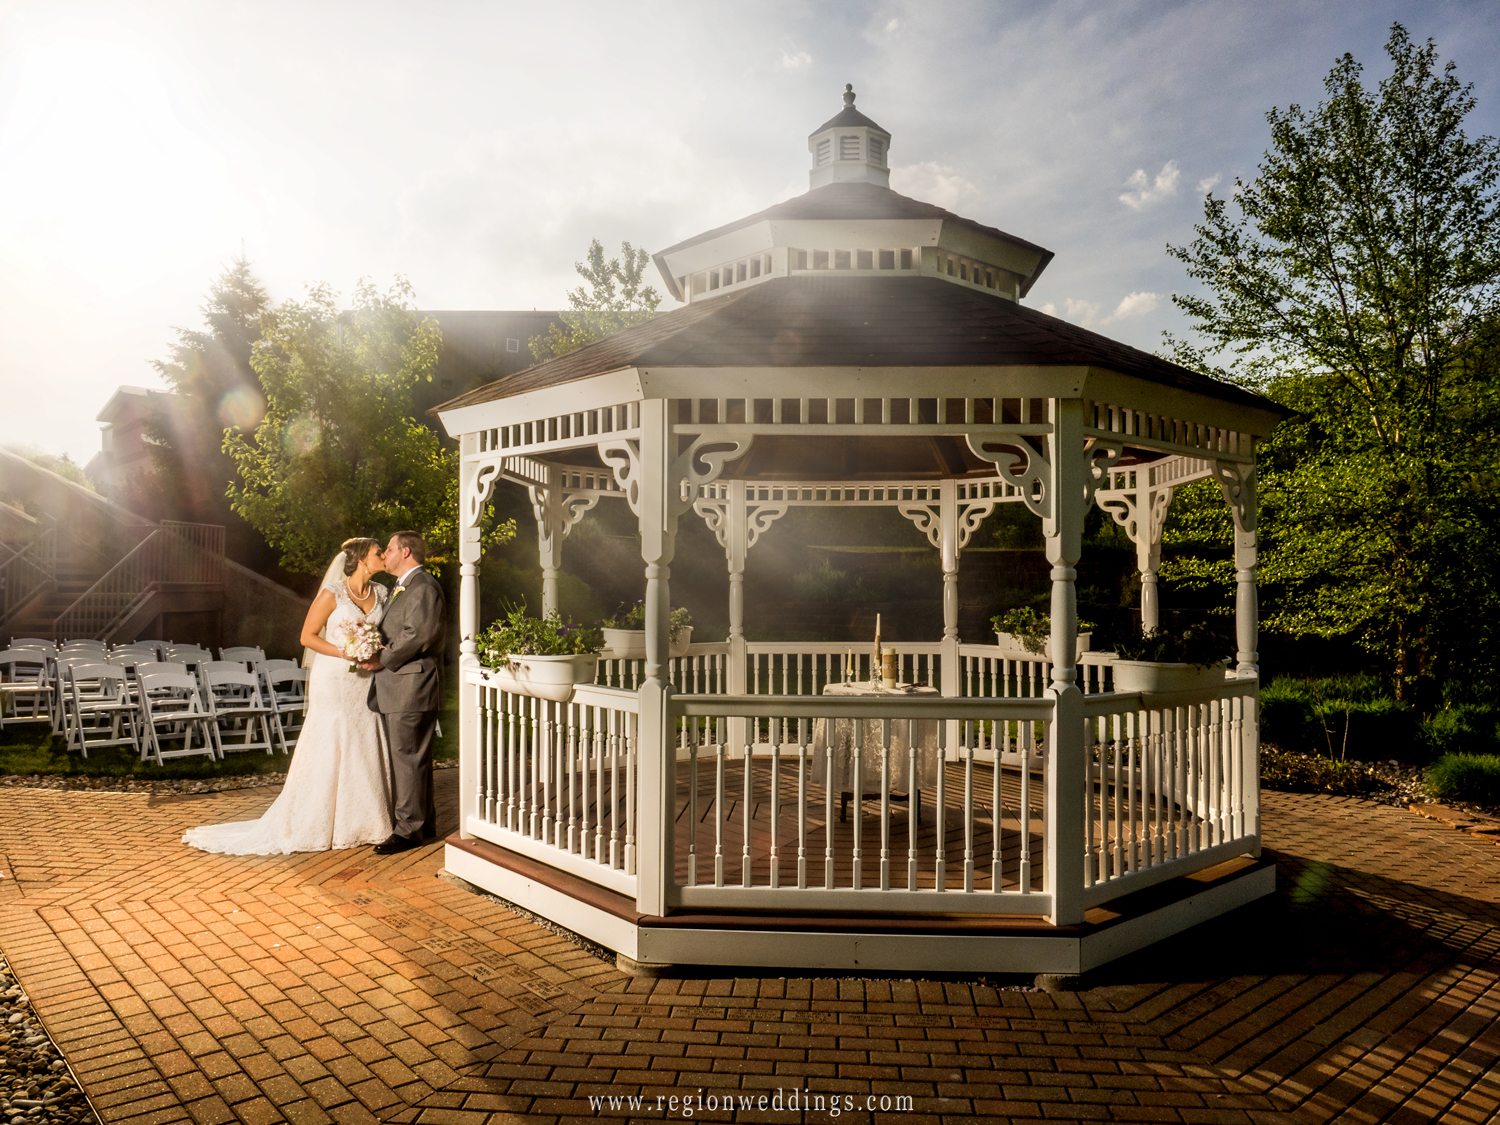 The bride and groom kiss by the gazebo as sun rays are cast upon them.